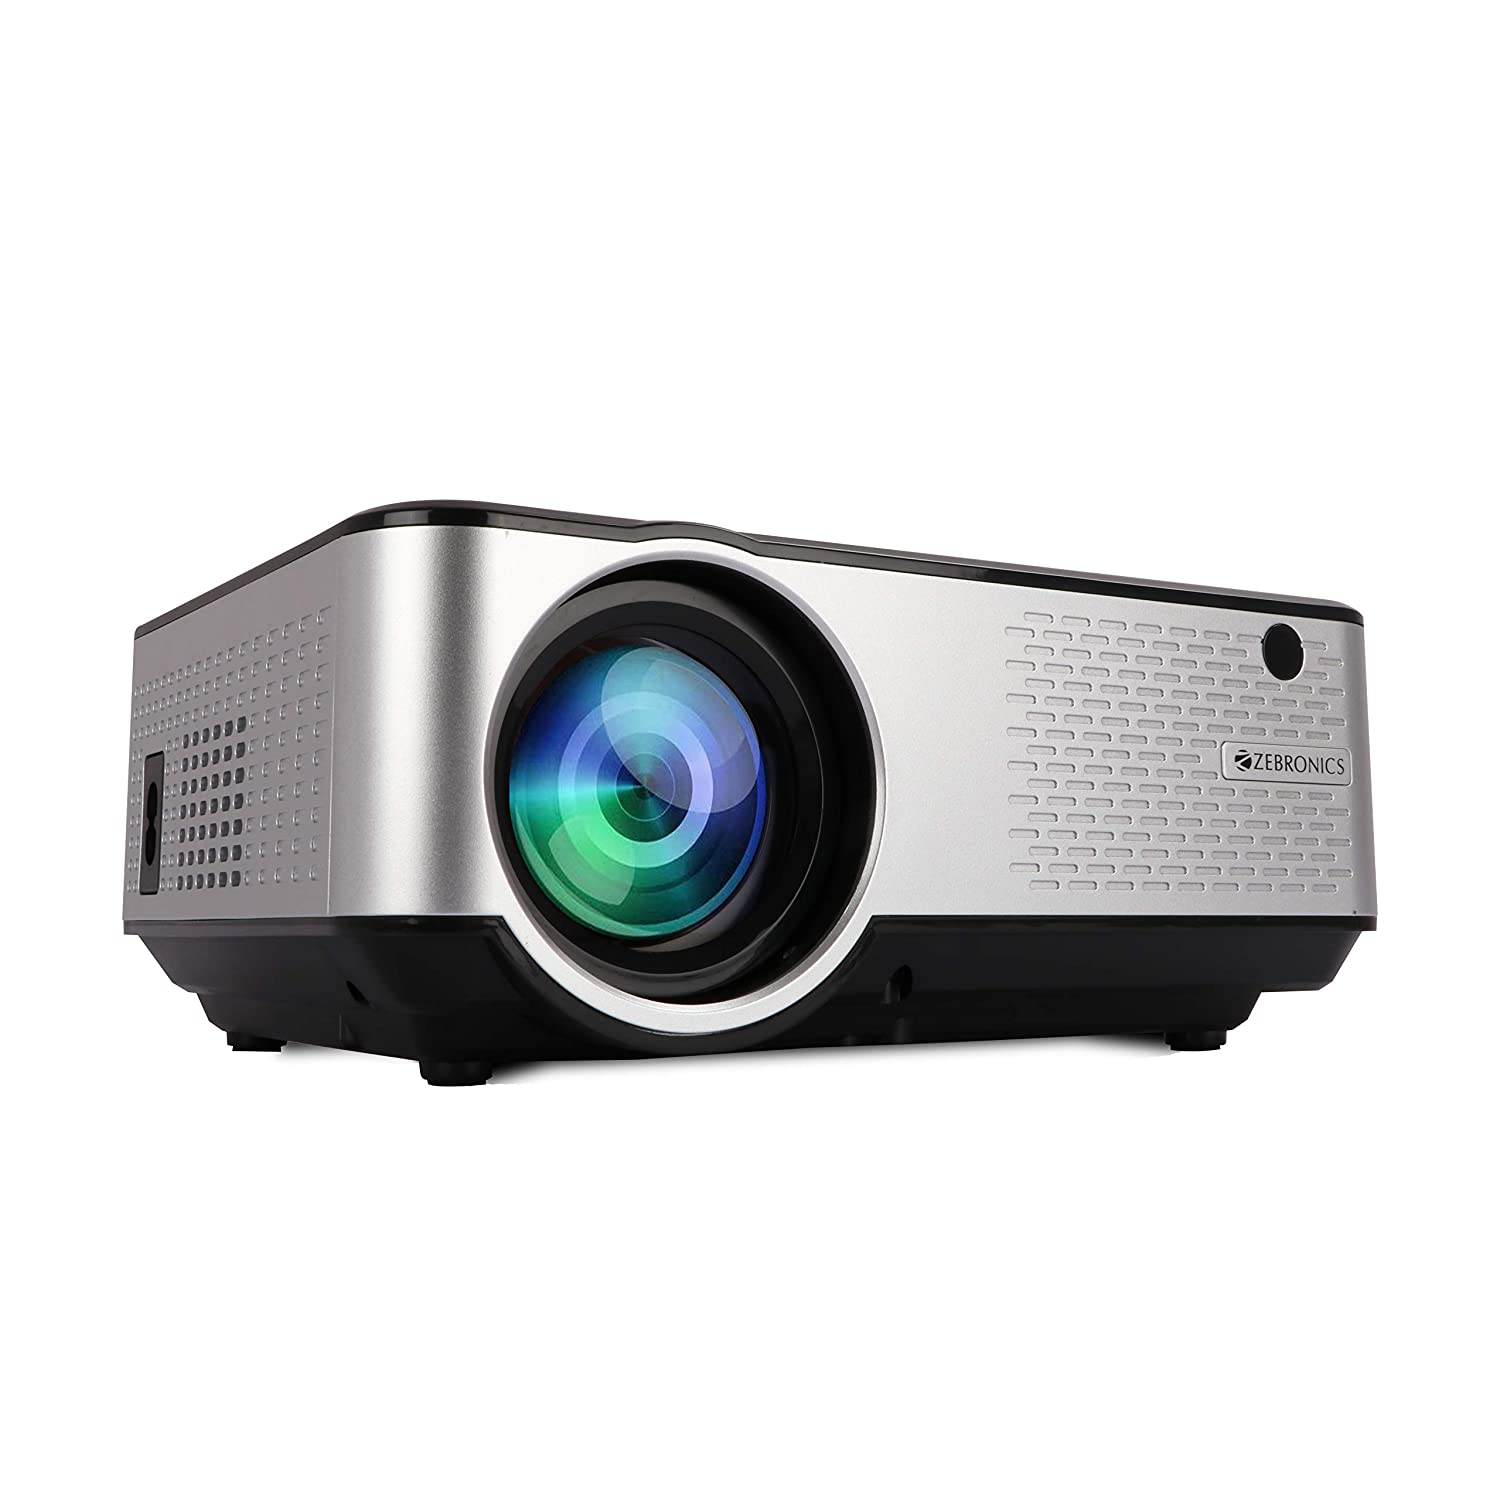 ZEBRONICS ZEB LP20 Full HD Home Theatre Projector 20 Lumens with Built  in Speaker, HDMI, VGA, USB, AV in, mSD Slot, AUX Out, 20p Support and ...